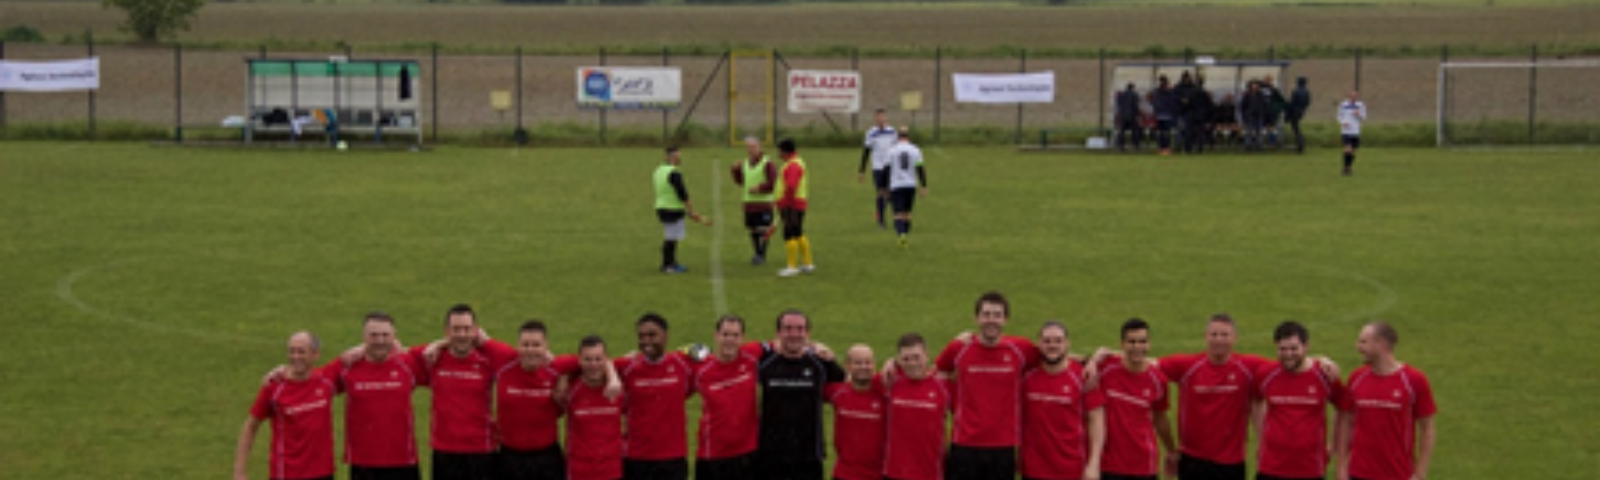 1a3fb9454 Agilent UK qualifies for European Football – Agilent Careers – Medium